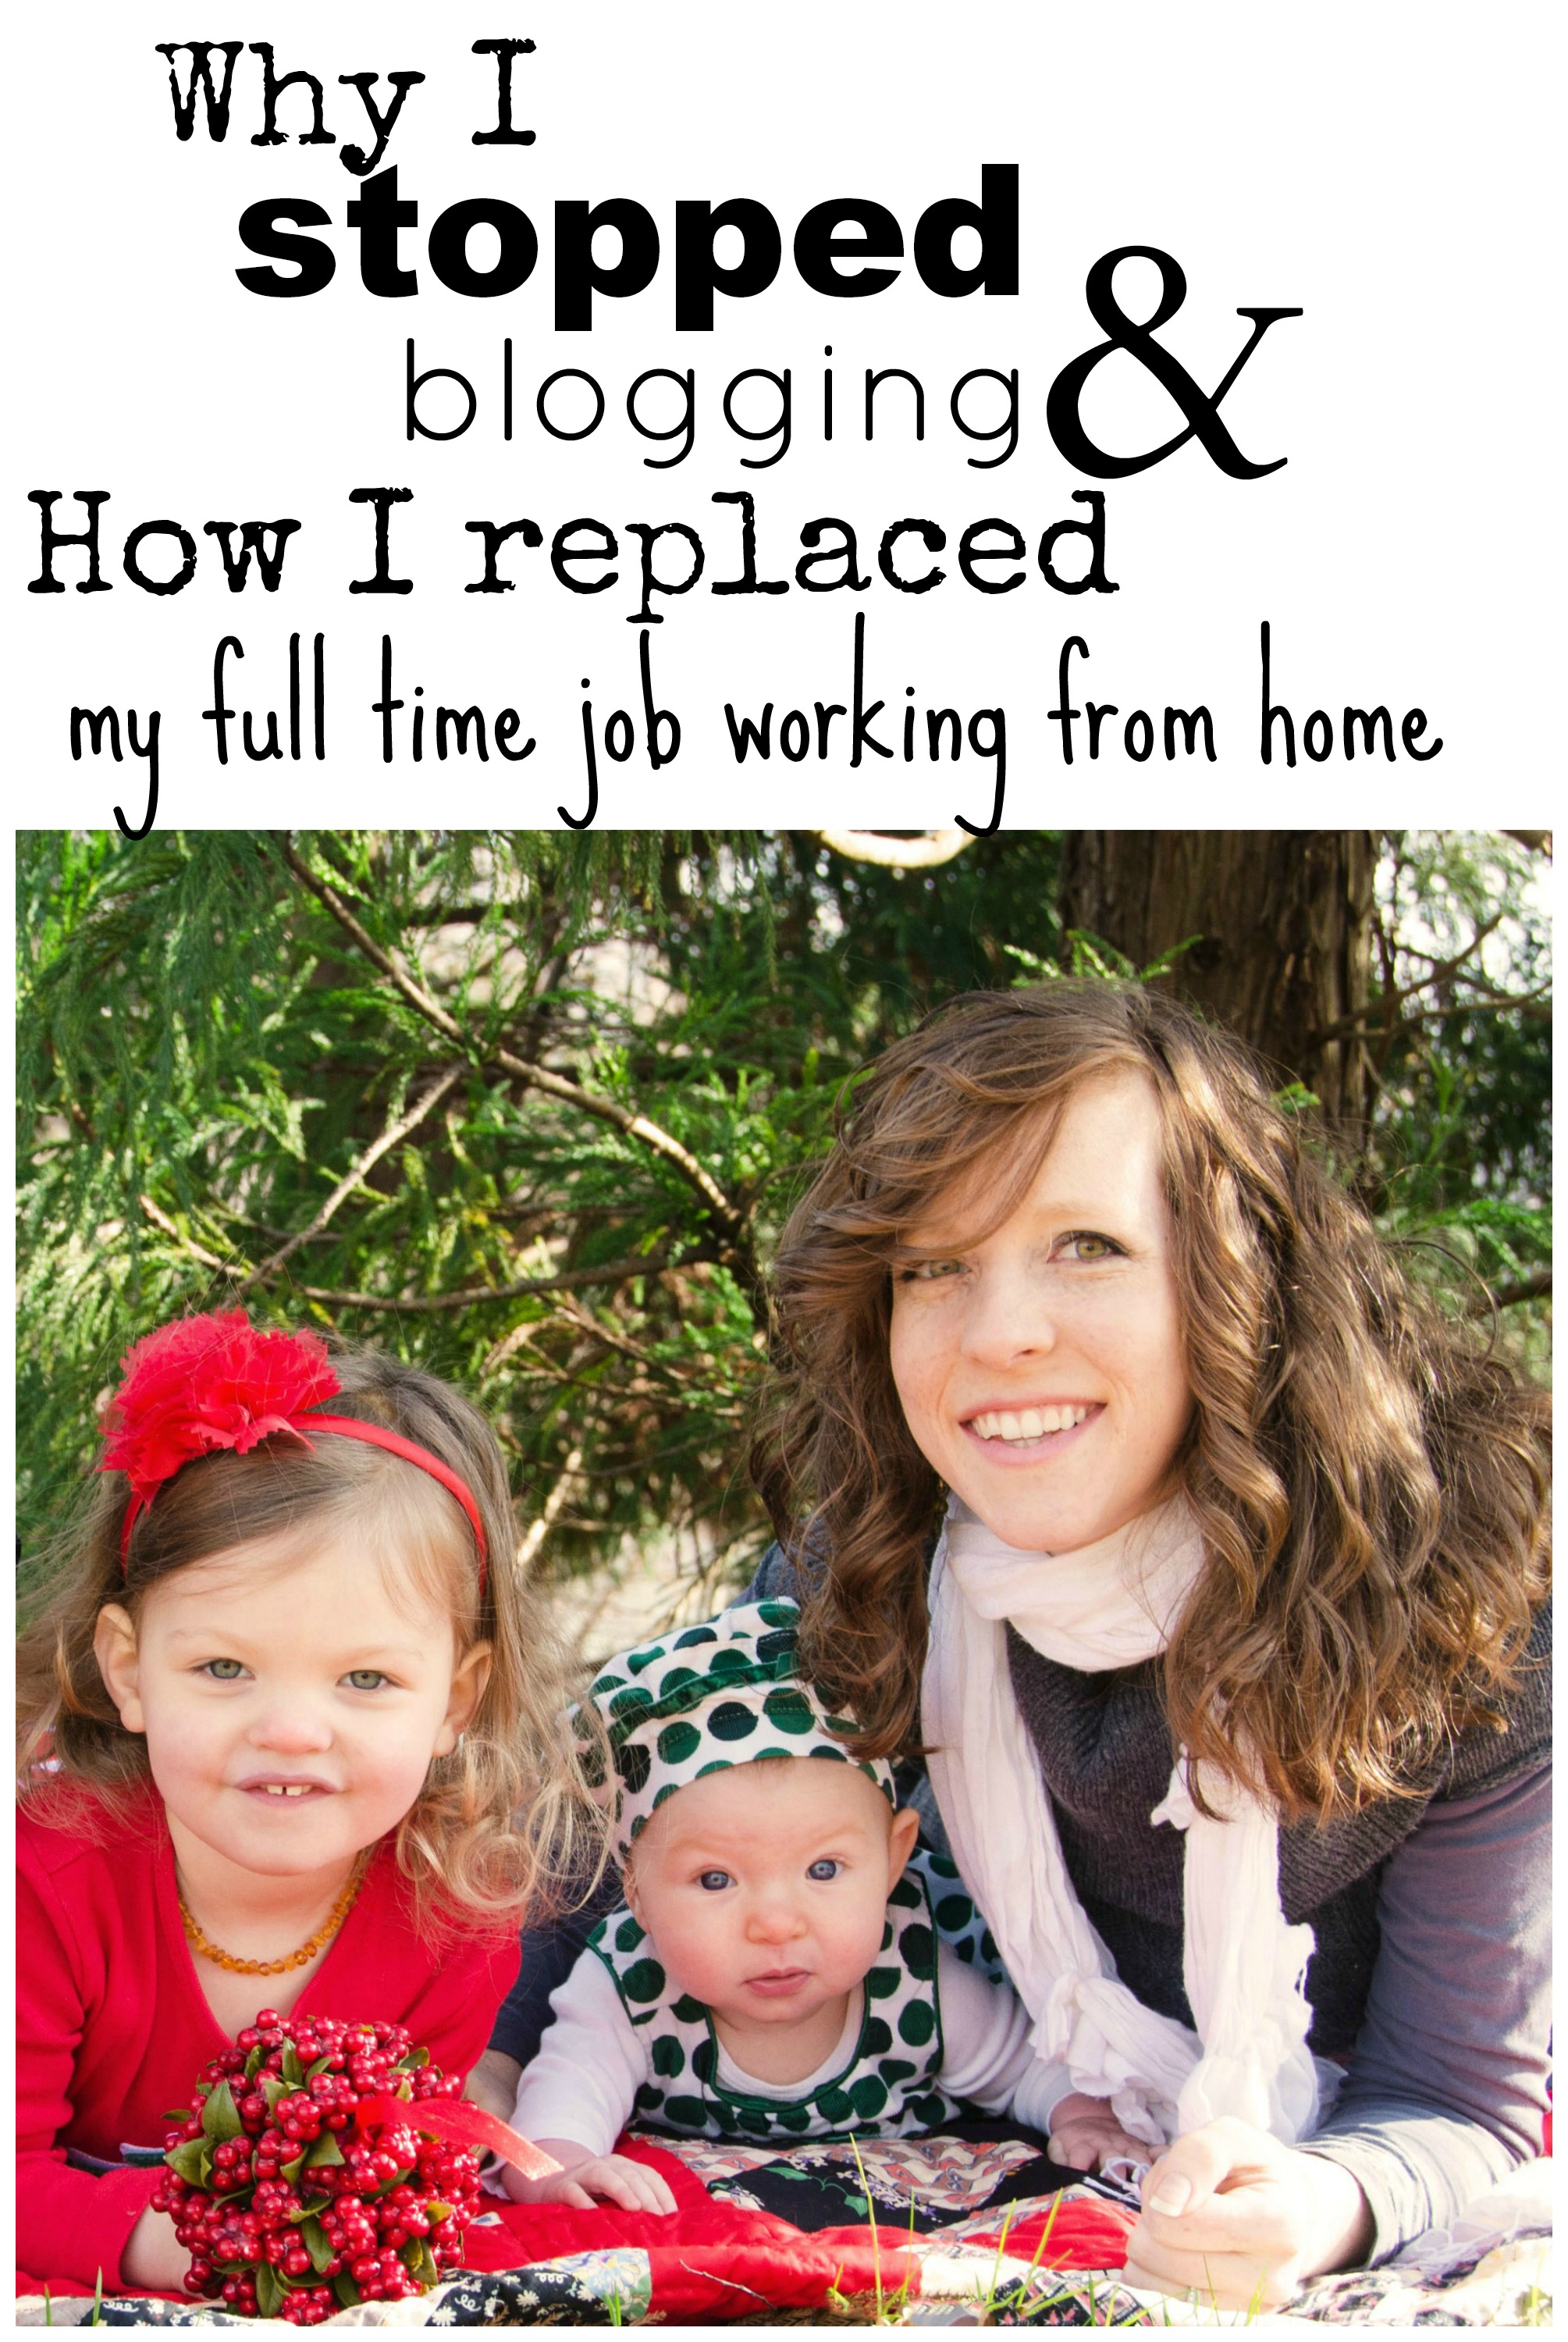 why I stopped blogging and how to work full time from home